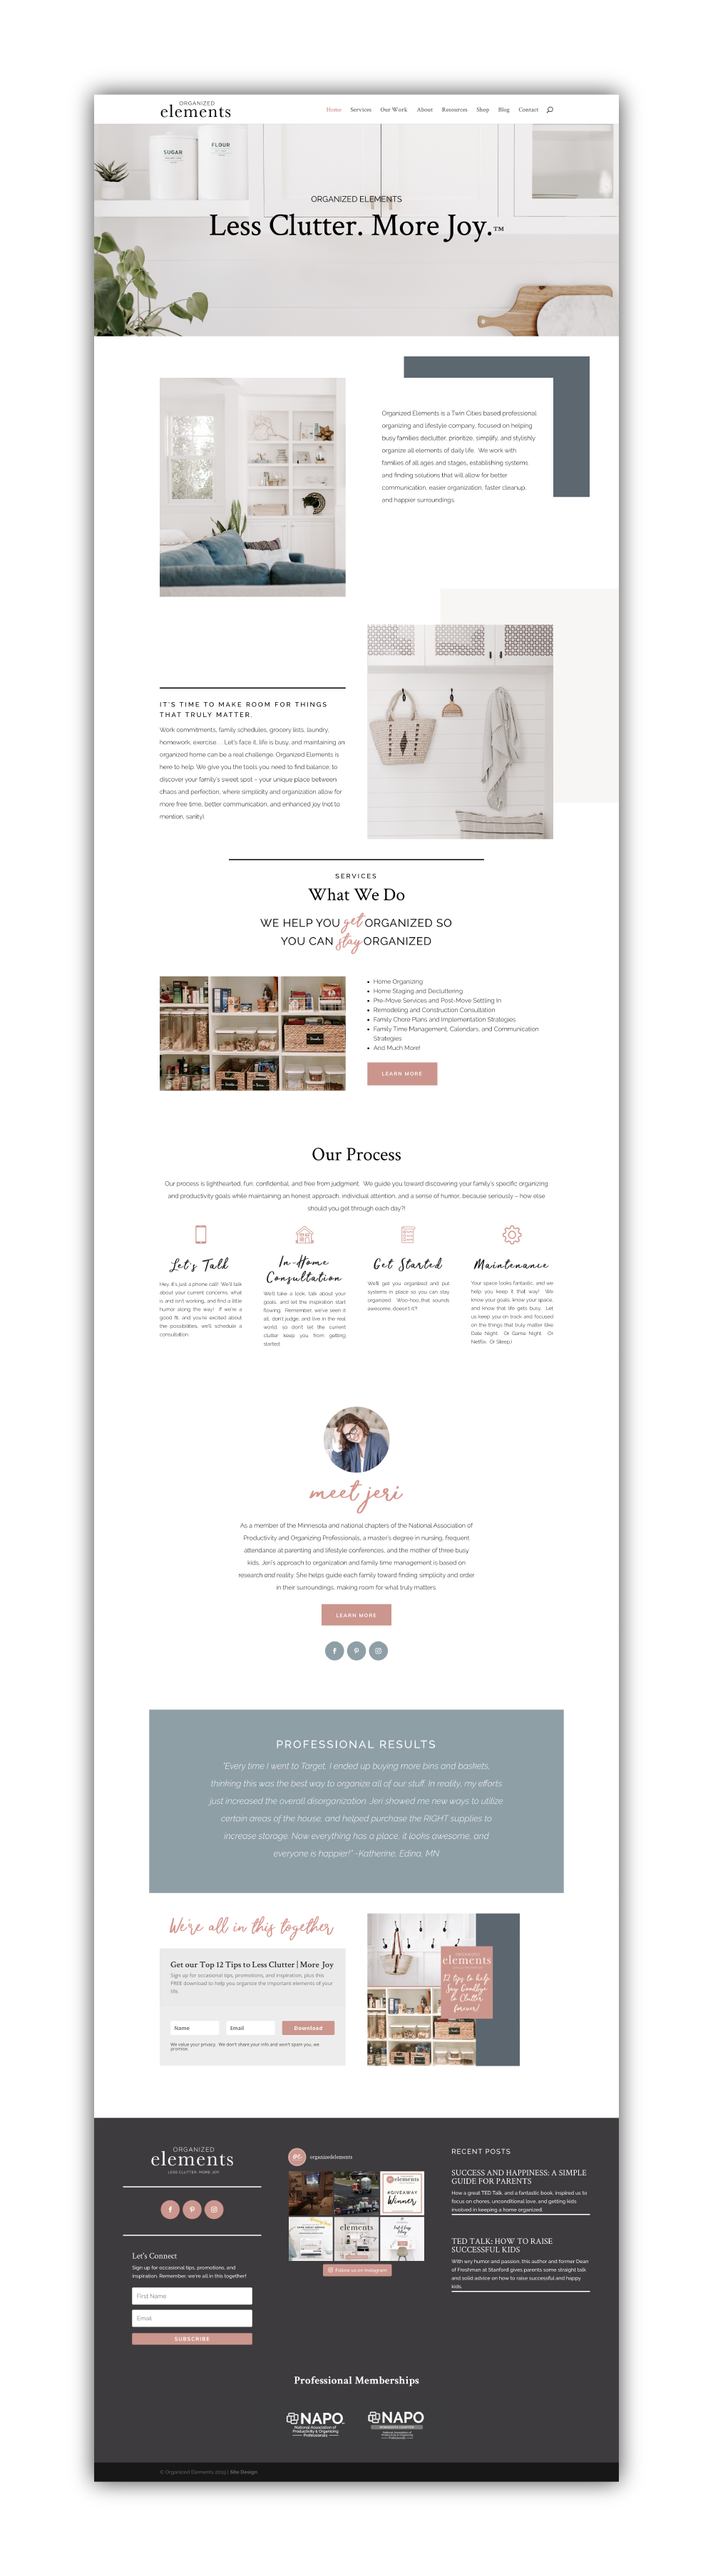 Website Design Inspiration For Service Based Businesses Entrepreneurs And Small Businesses In 2020 Wordpress Website Design Website Design Website Design Inspiration